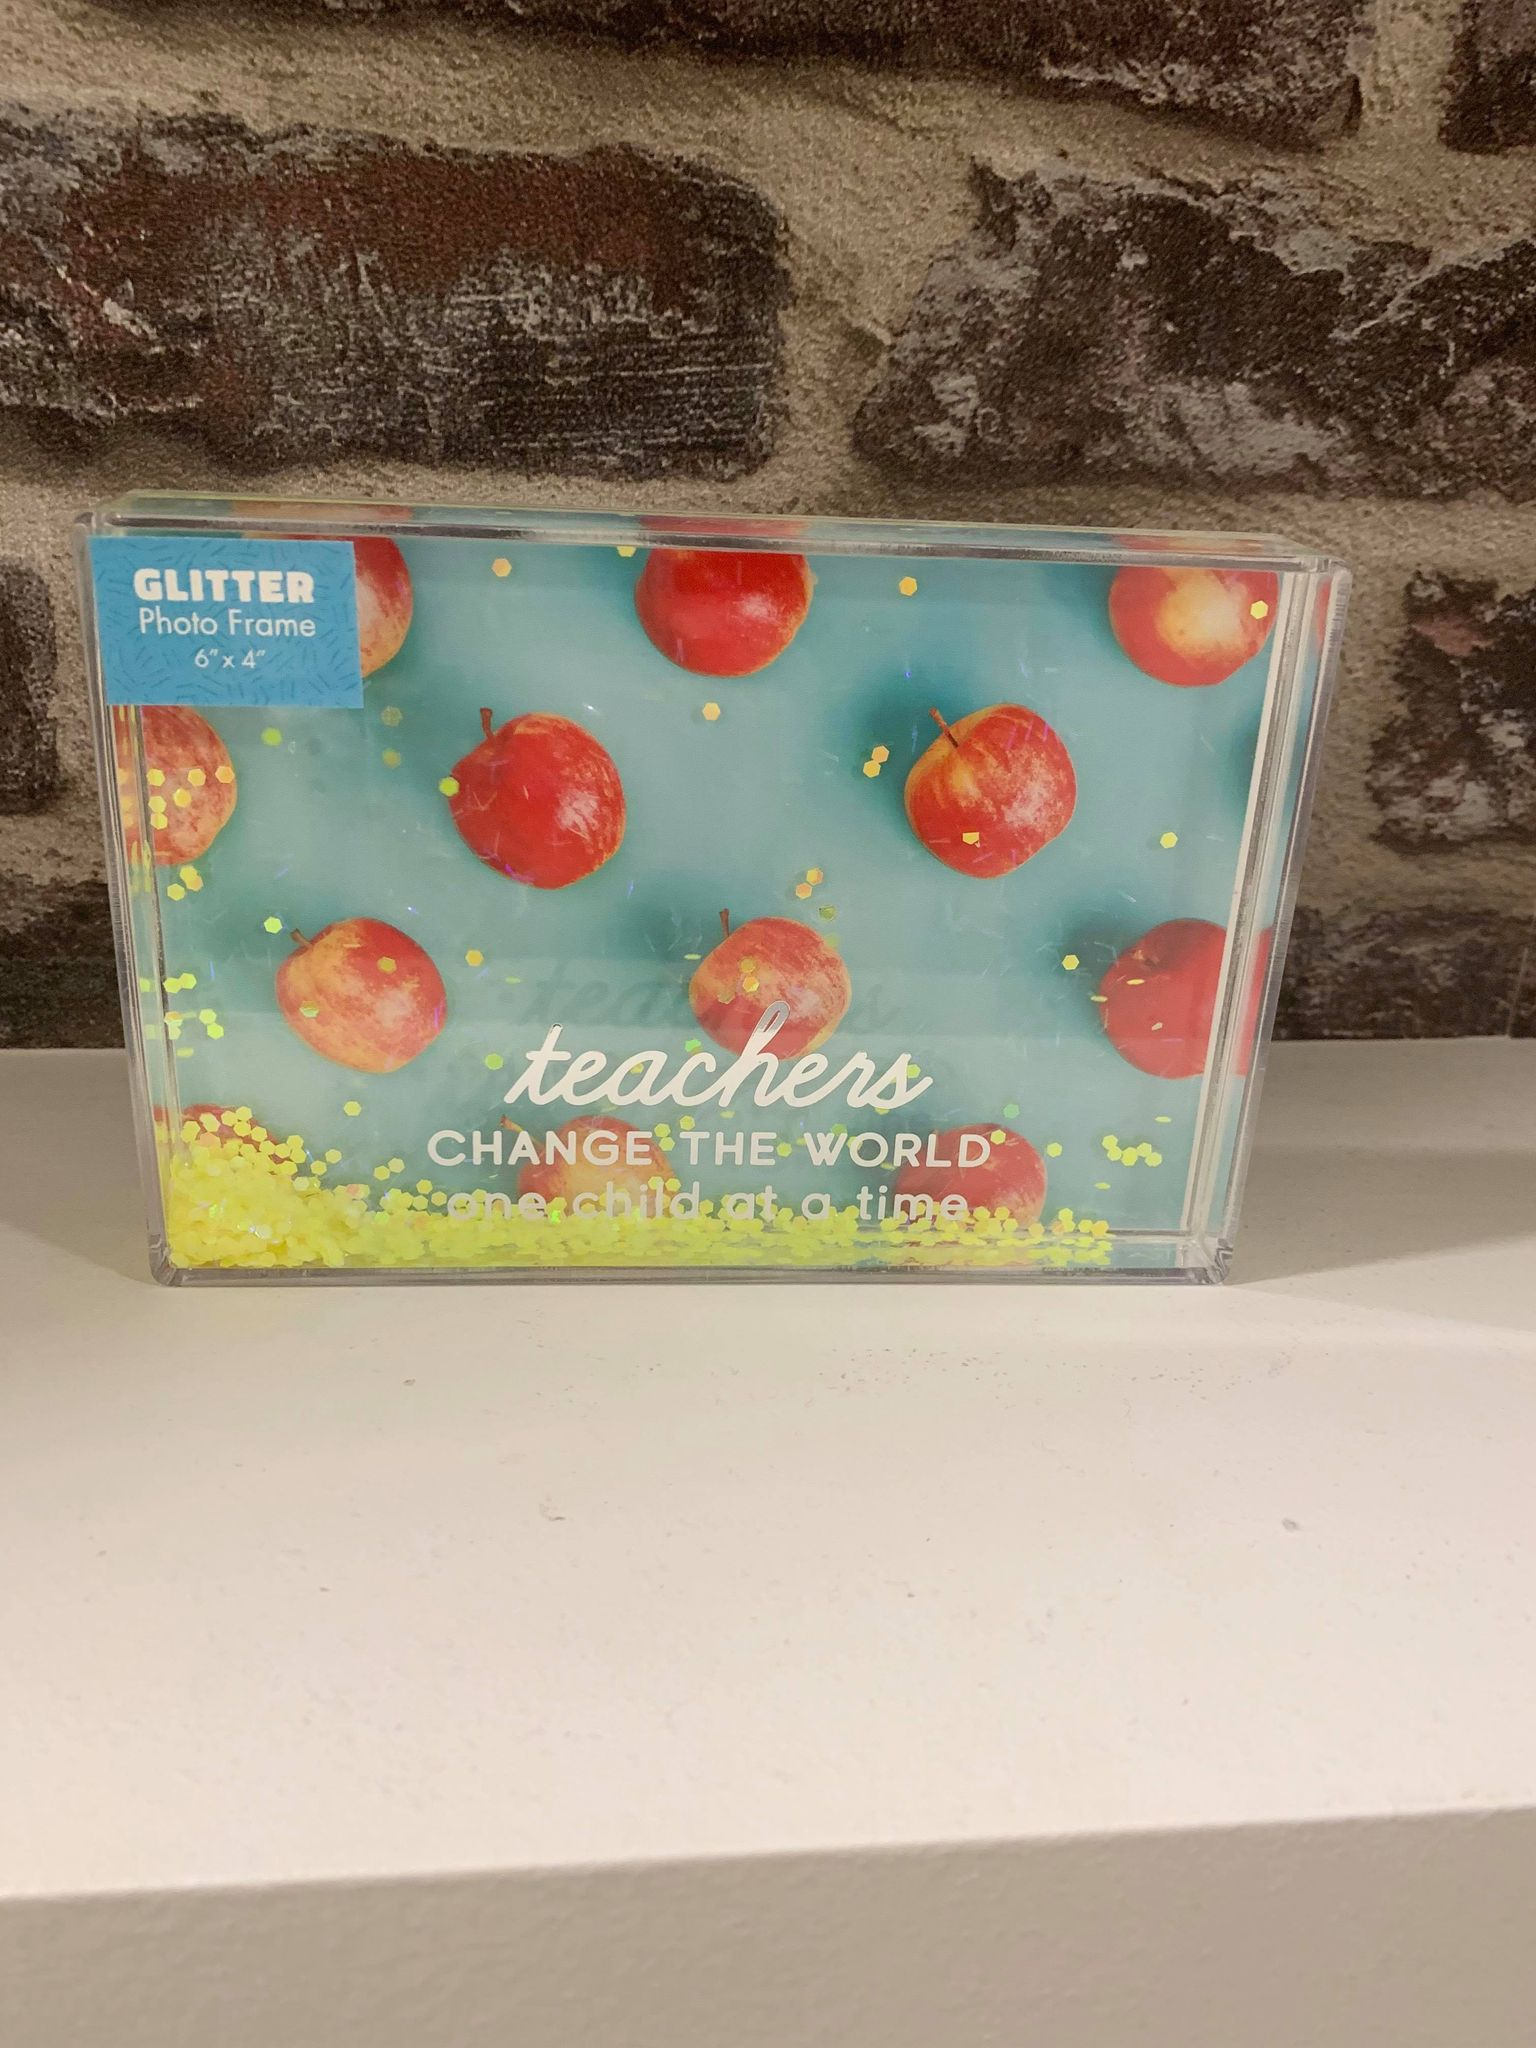 Glitter teacher block photo frame